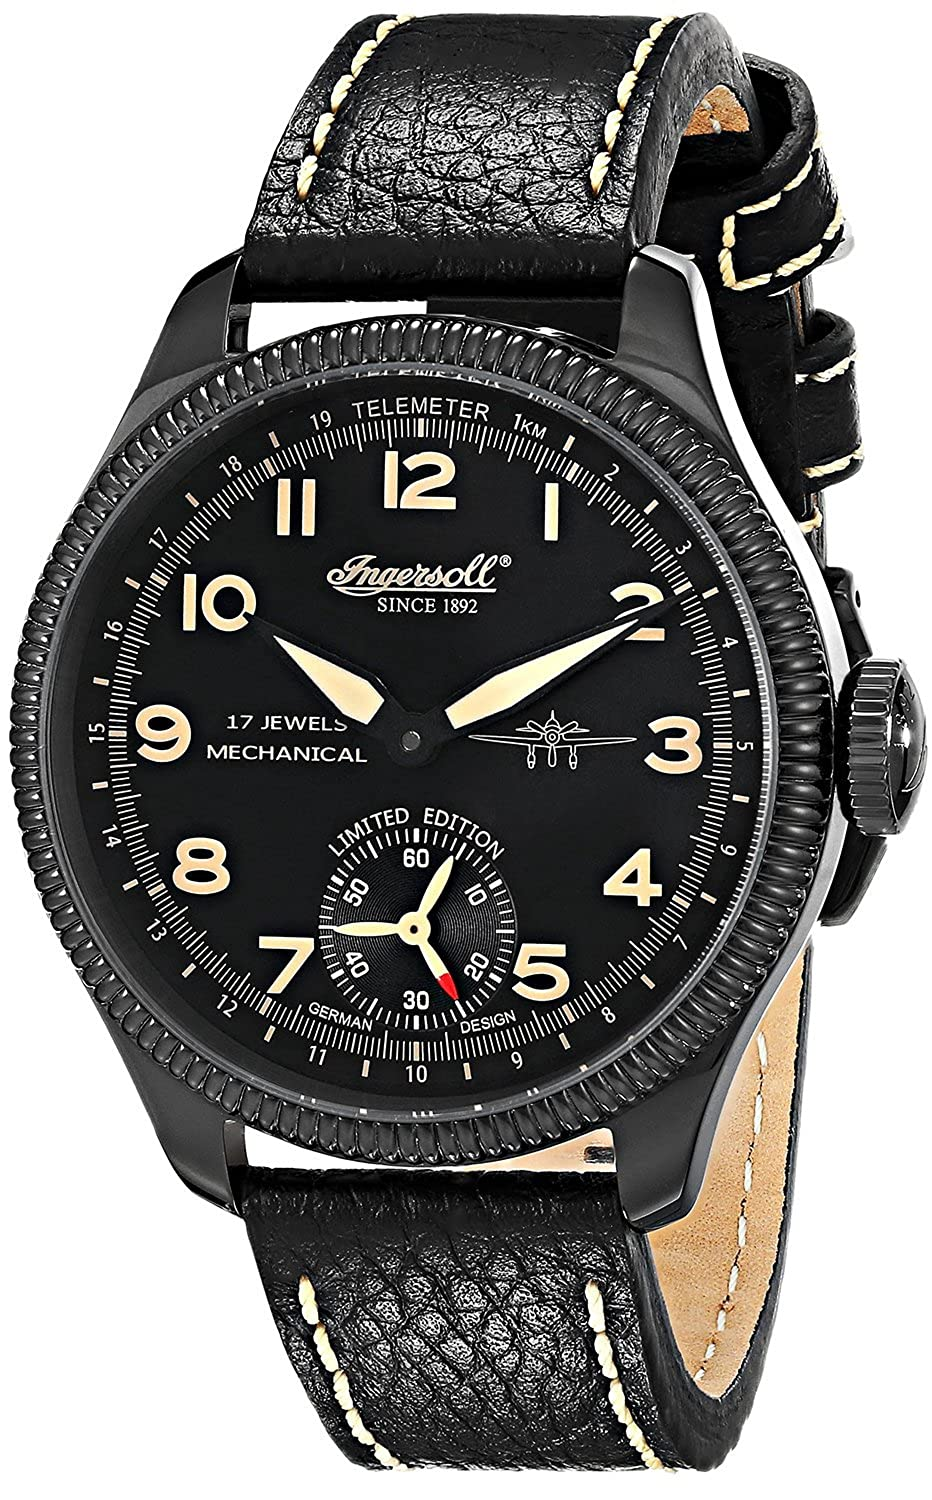 [インガソール]Ingersoll 腕時計 Chinook Stainless Steel Mechanical Watch with Black Leather Band IN3105BBKO メンズ [並行輸入品] B016E4NDTA